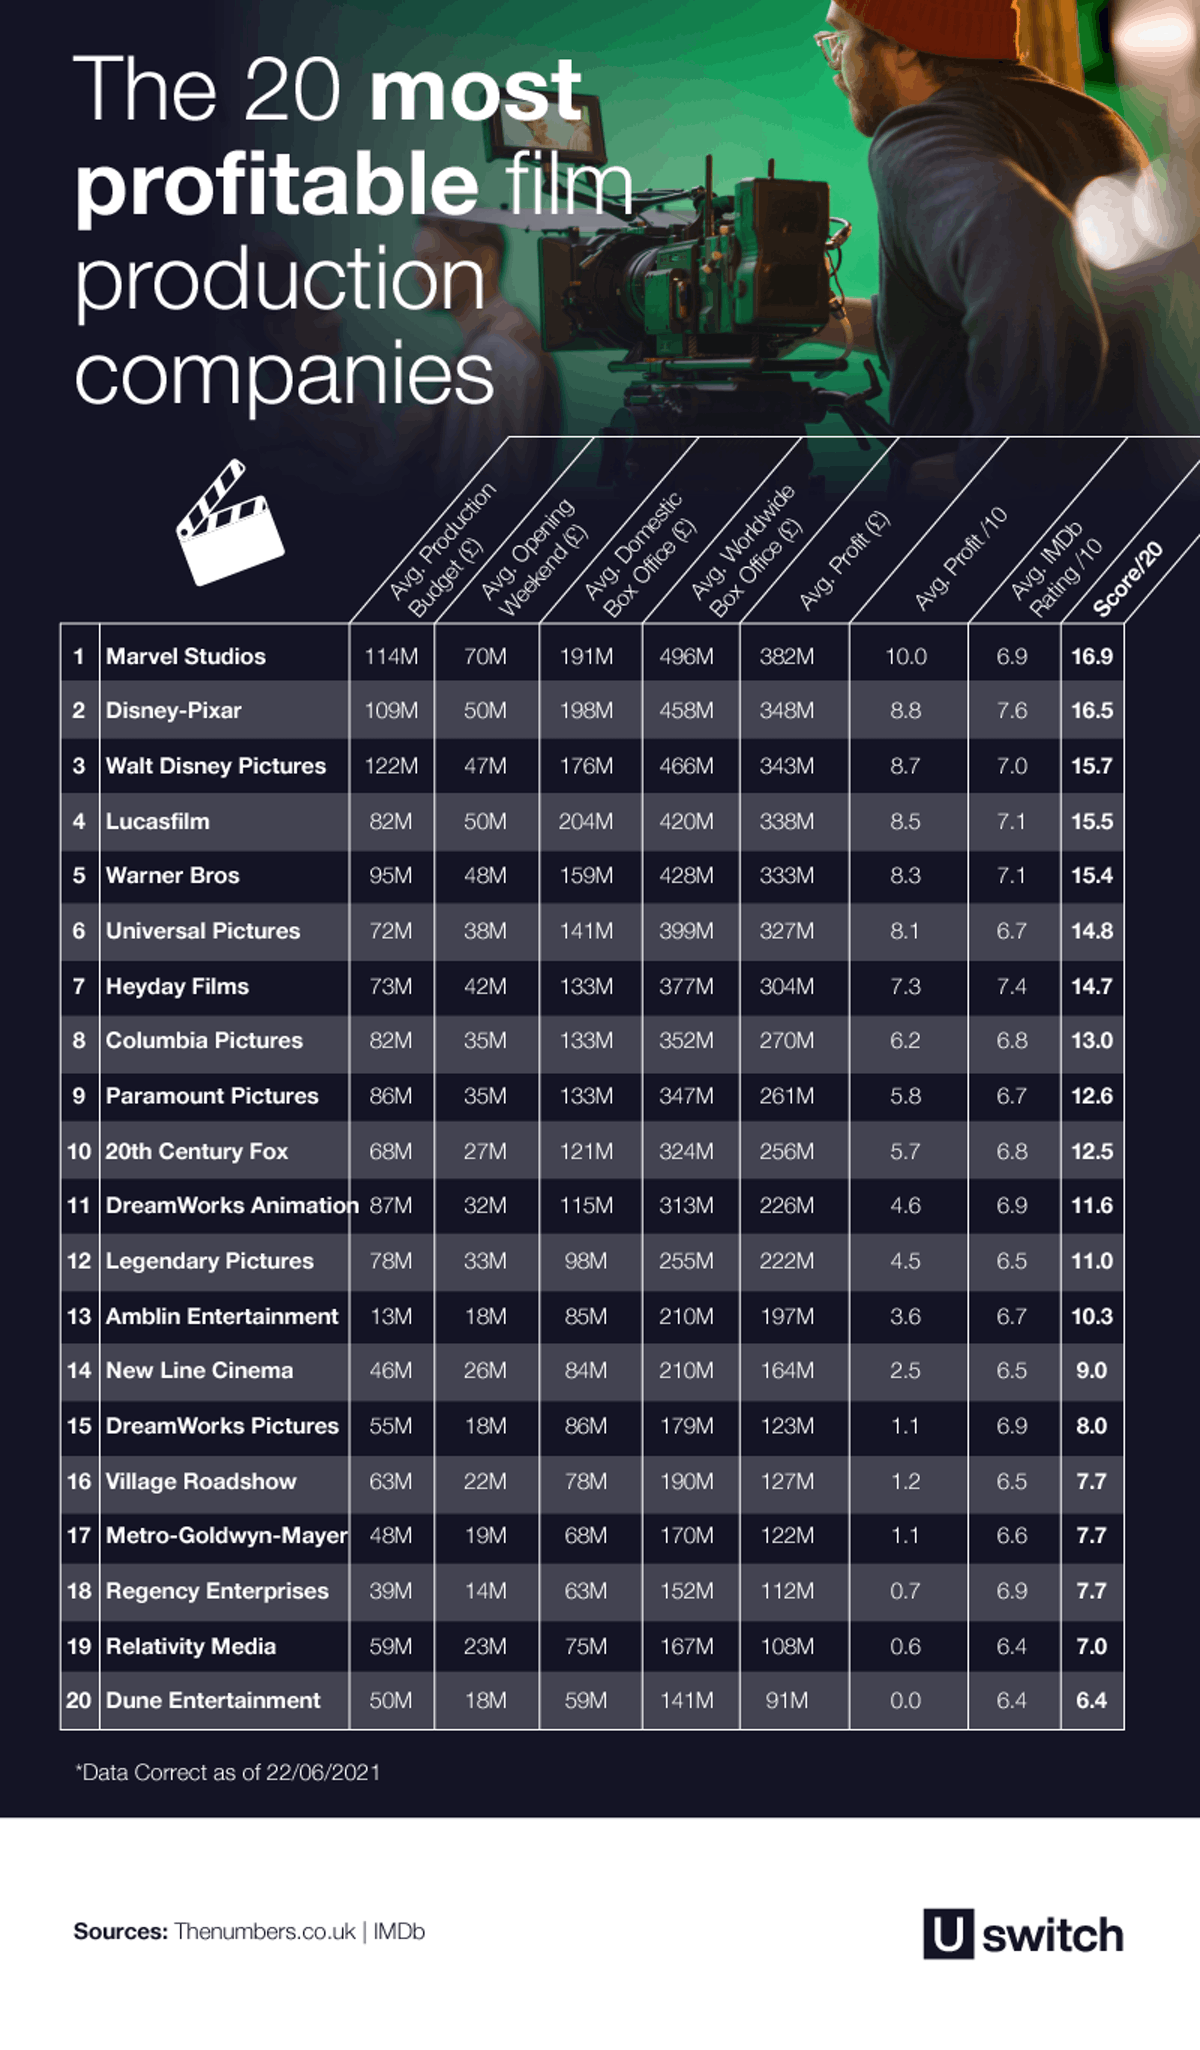 Table of the 20 most profitable film production companies